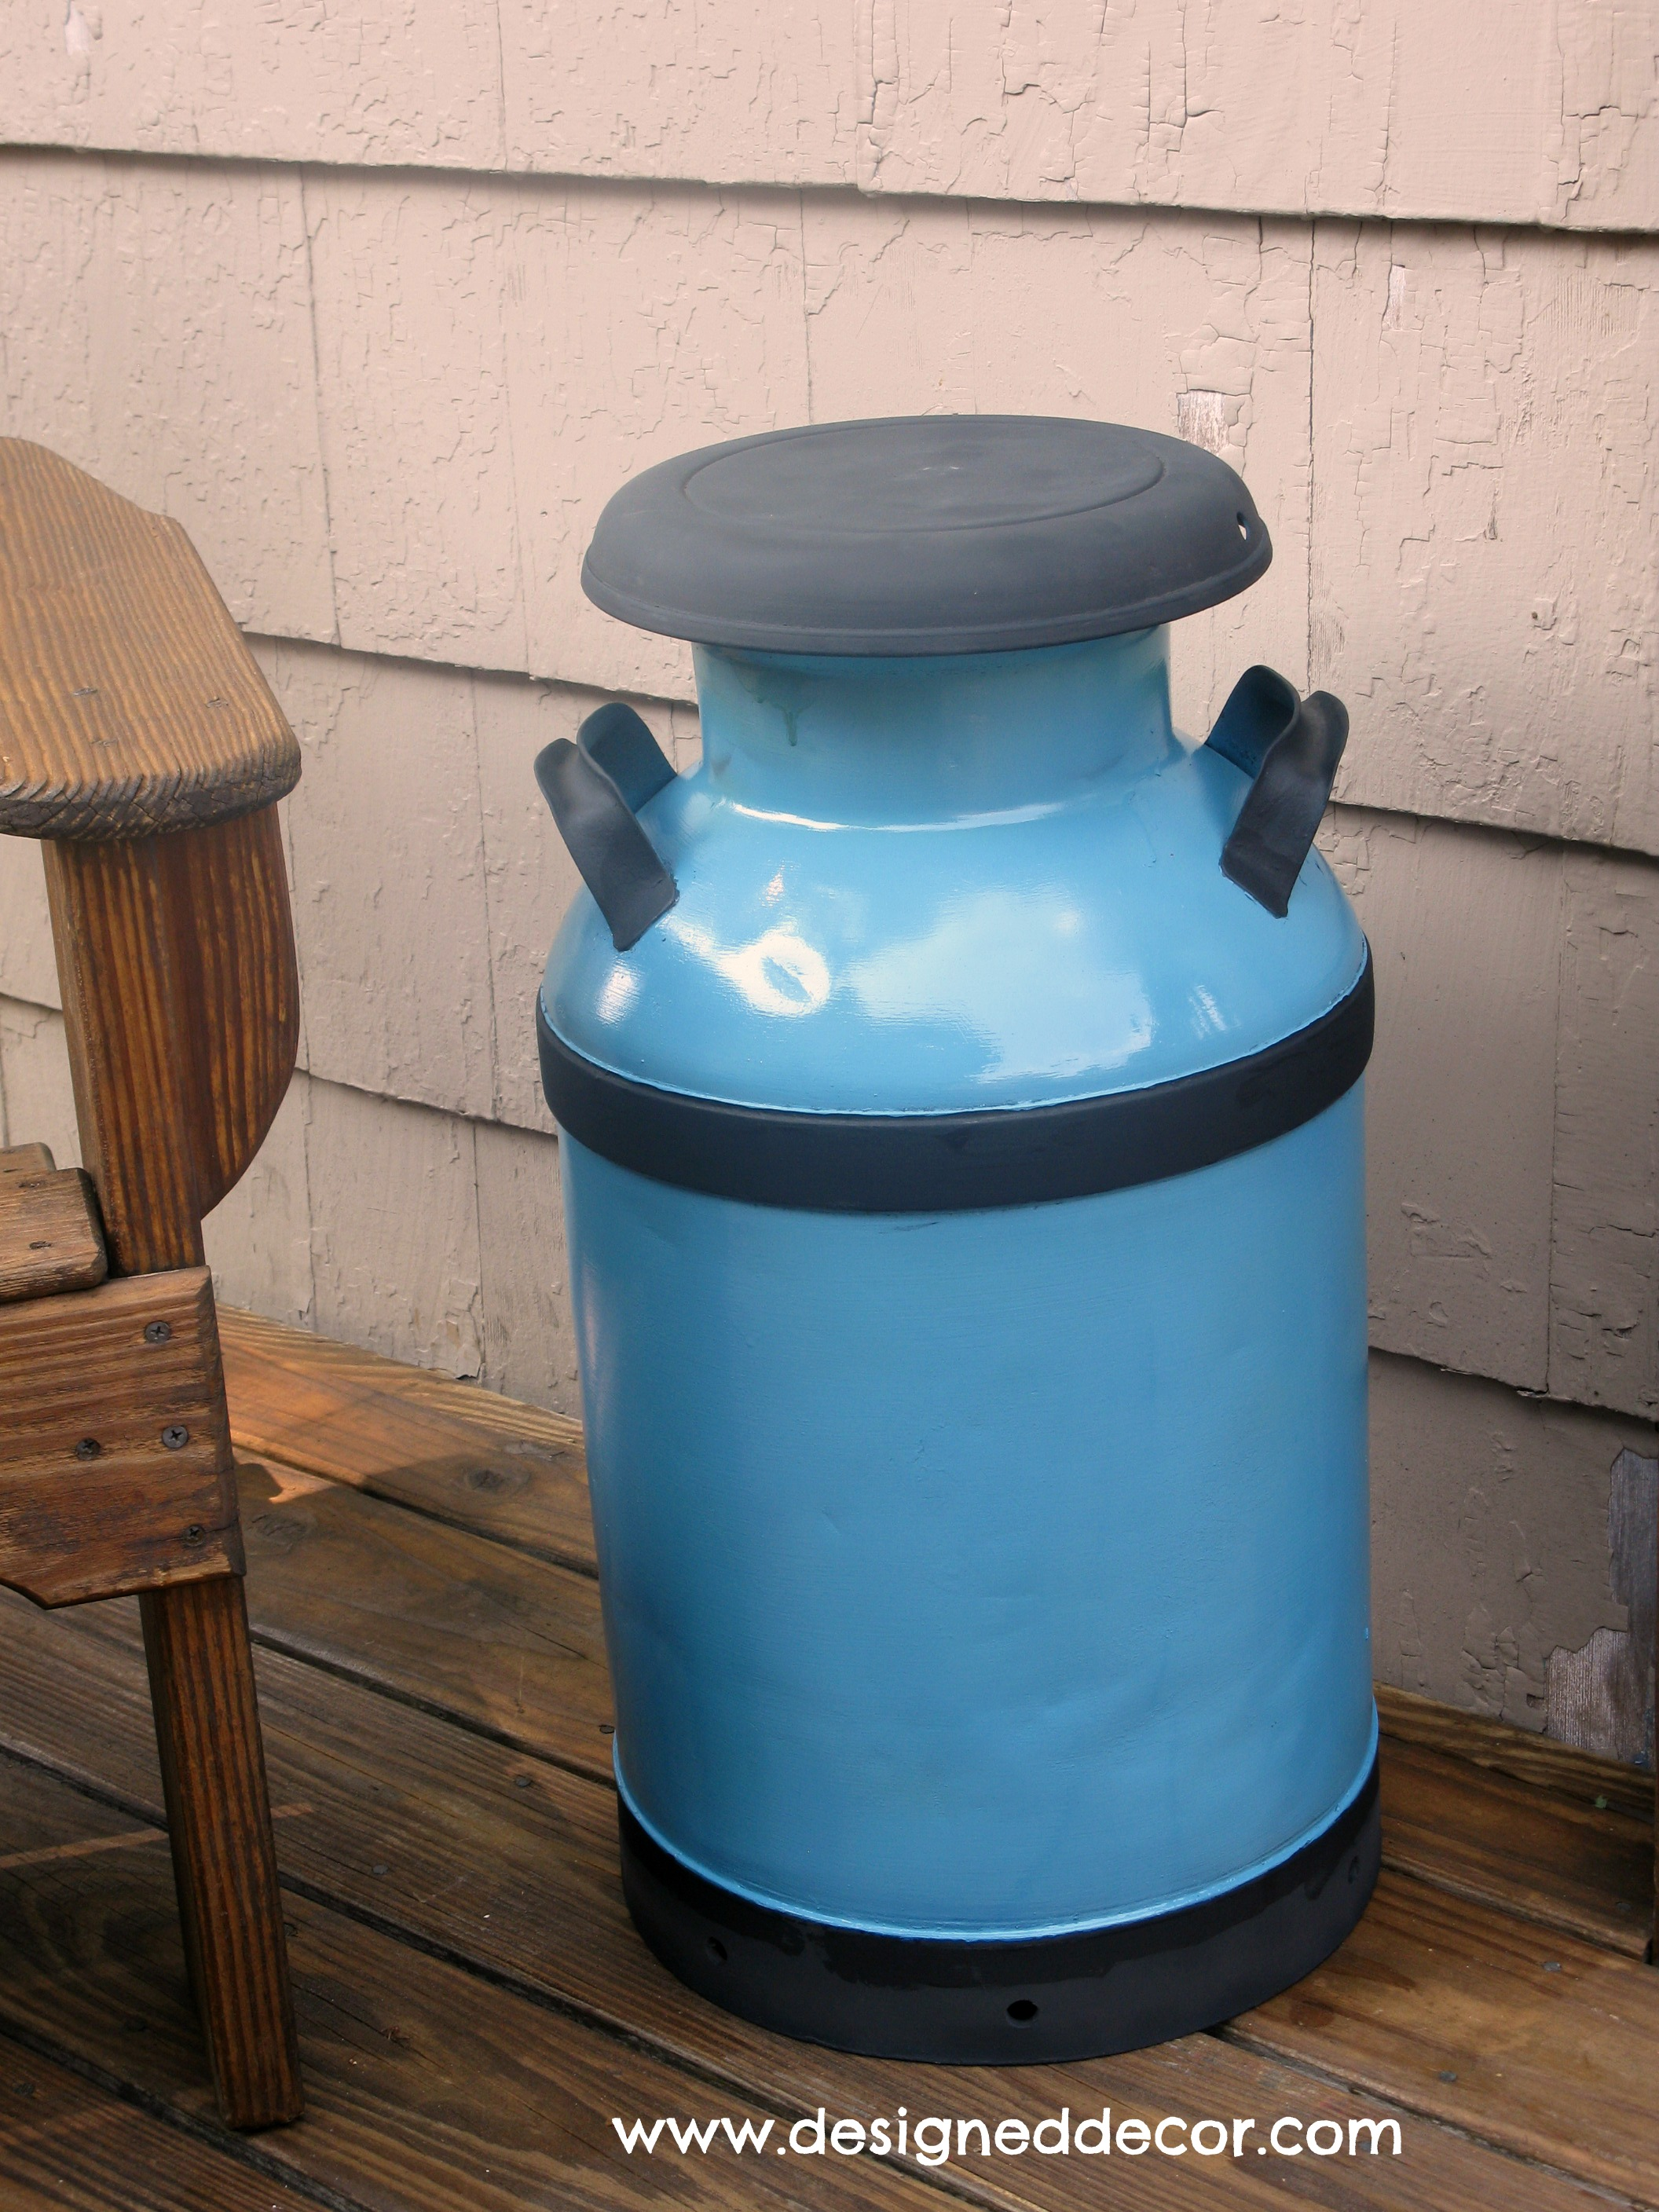 Re purposing an antique milk can designed decor for Old milk can decorating ideas